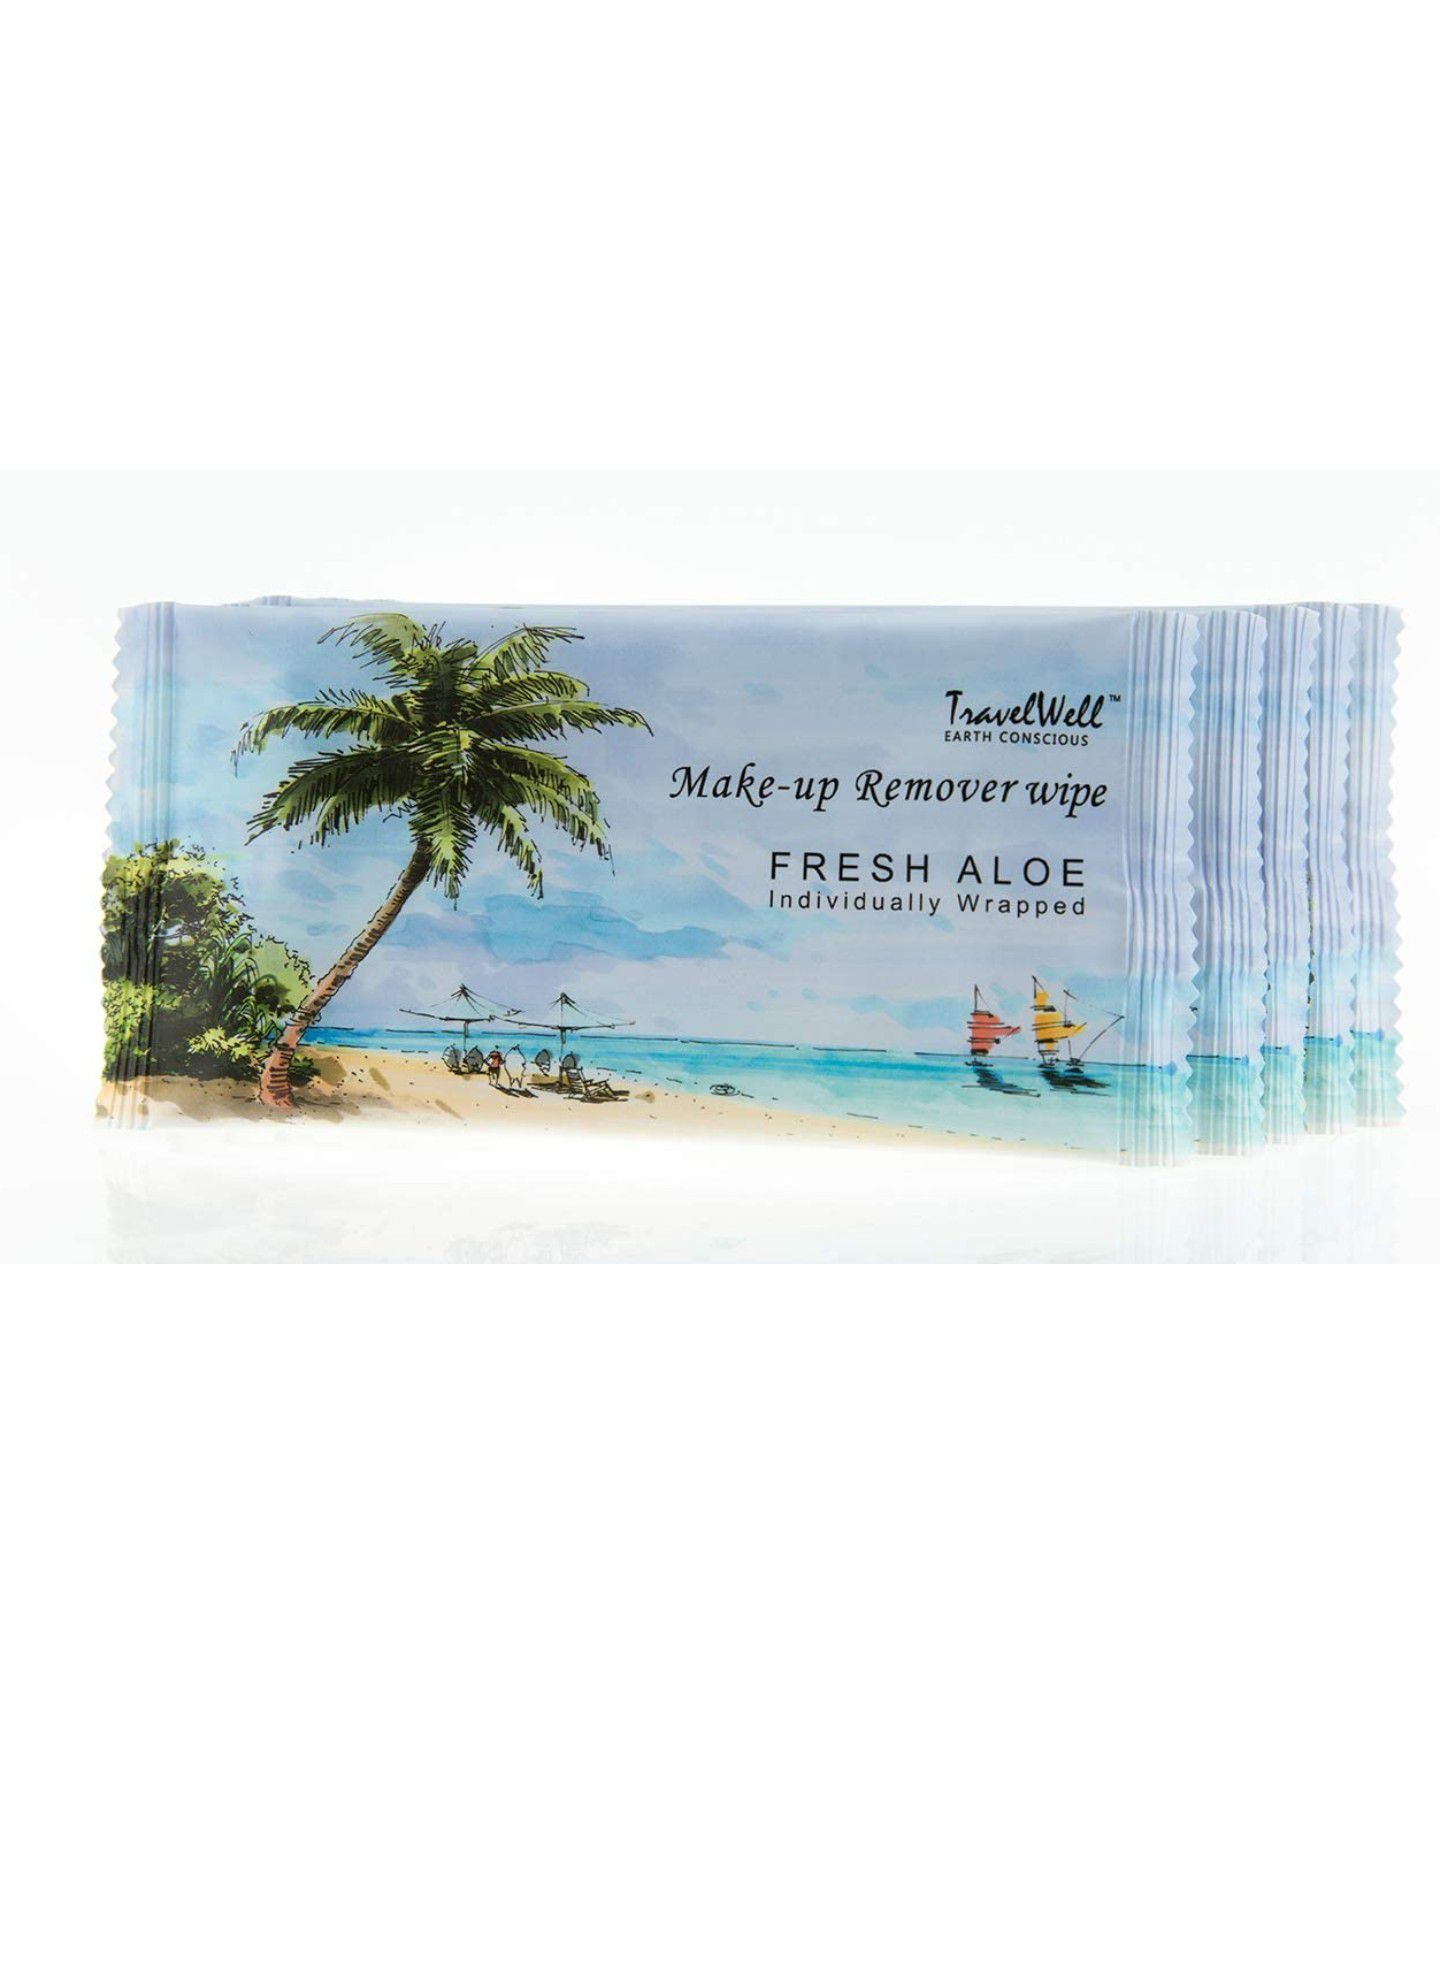 TRAVELWELL - 100 Fresh Aloe Individually Wrapped Makeup Remover Cleansing Travel Wipes